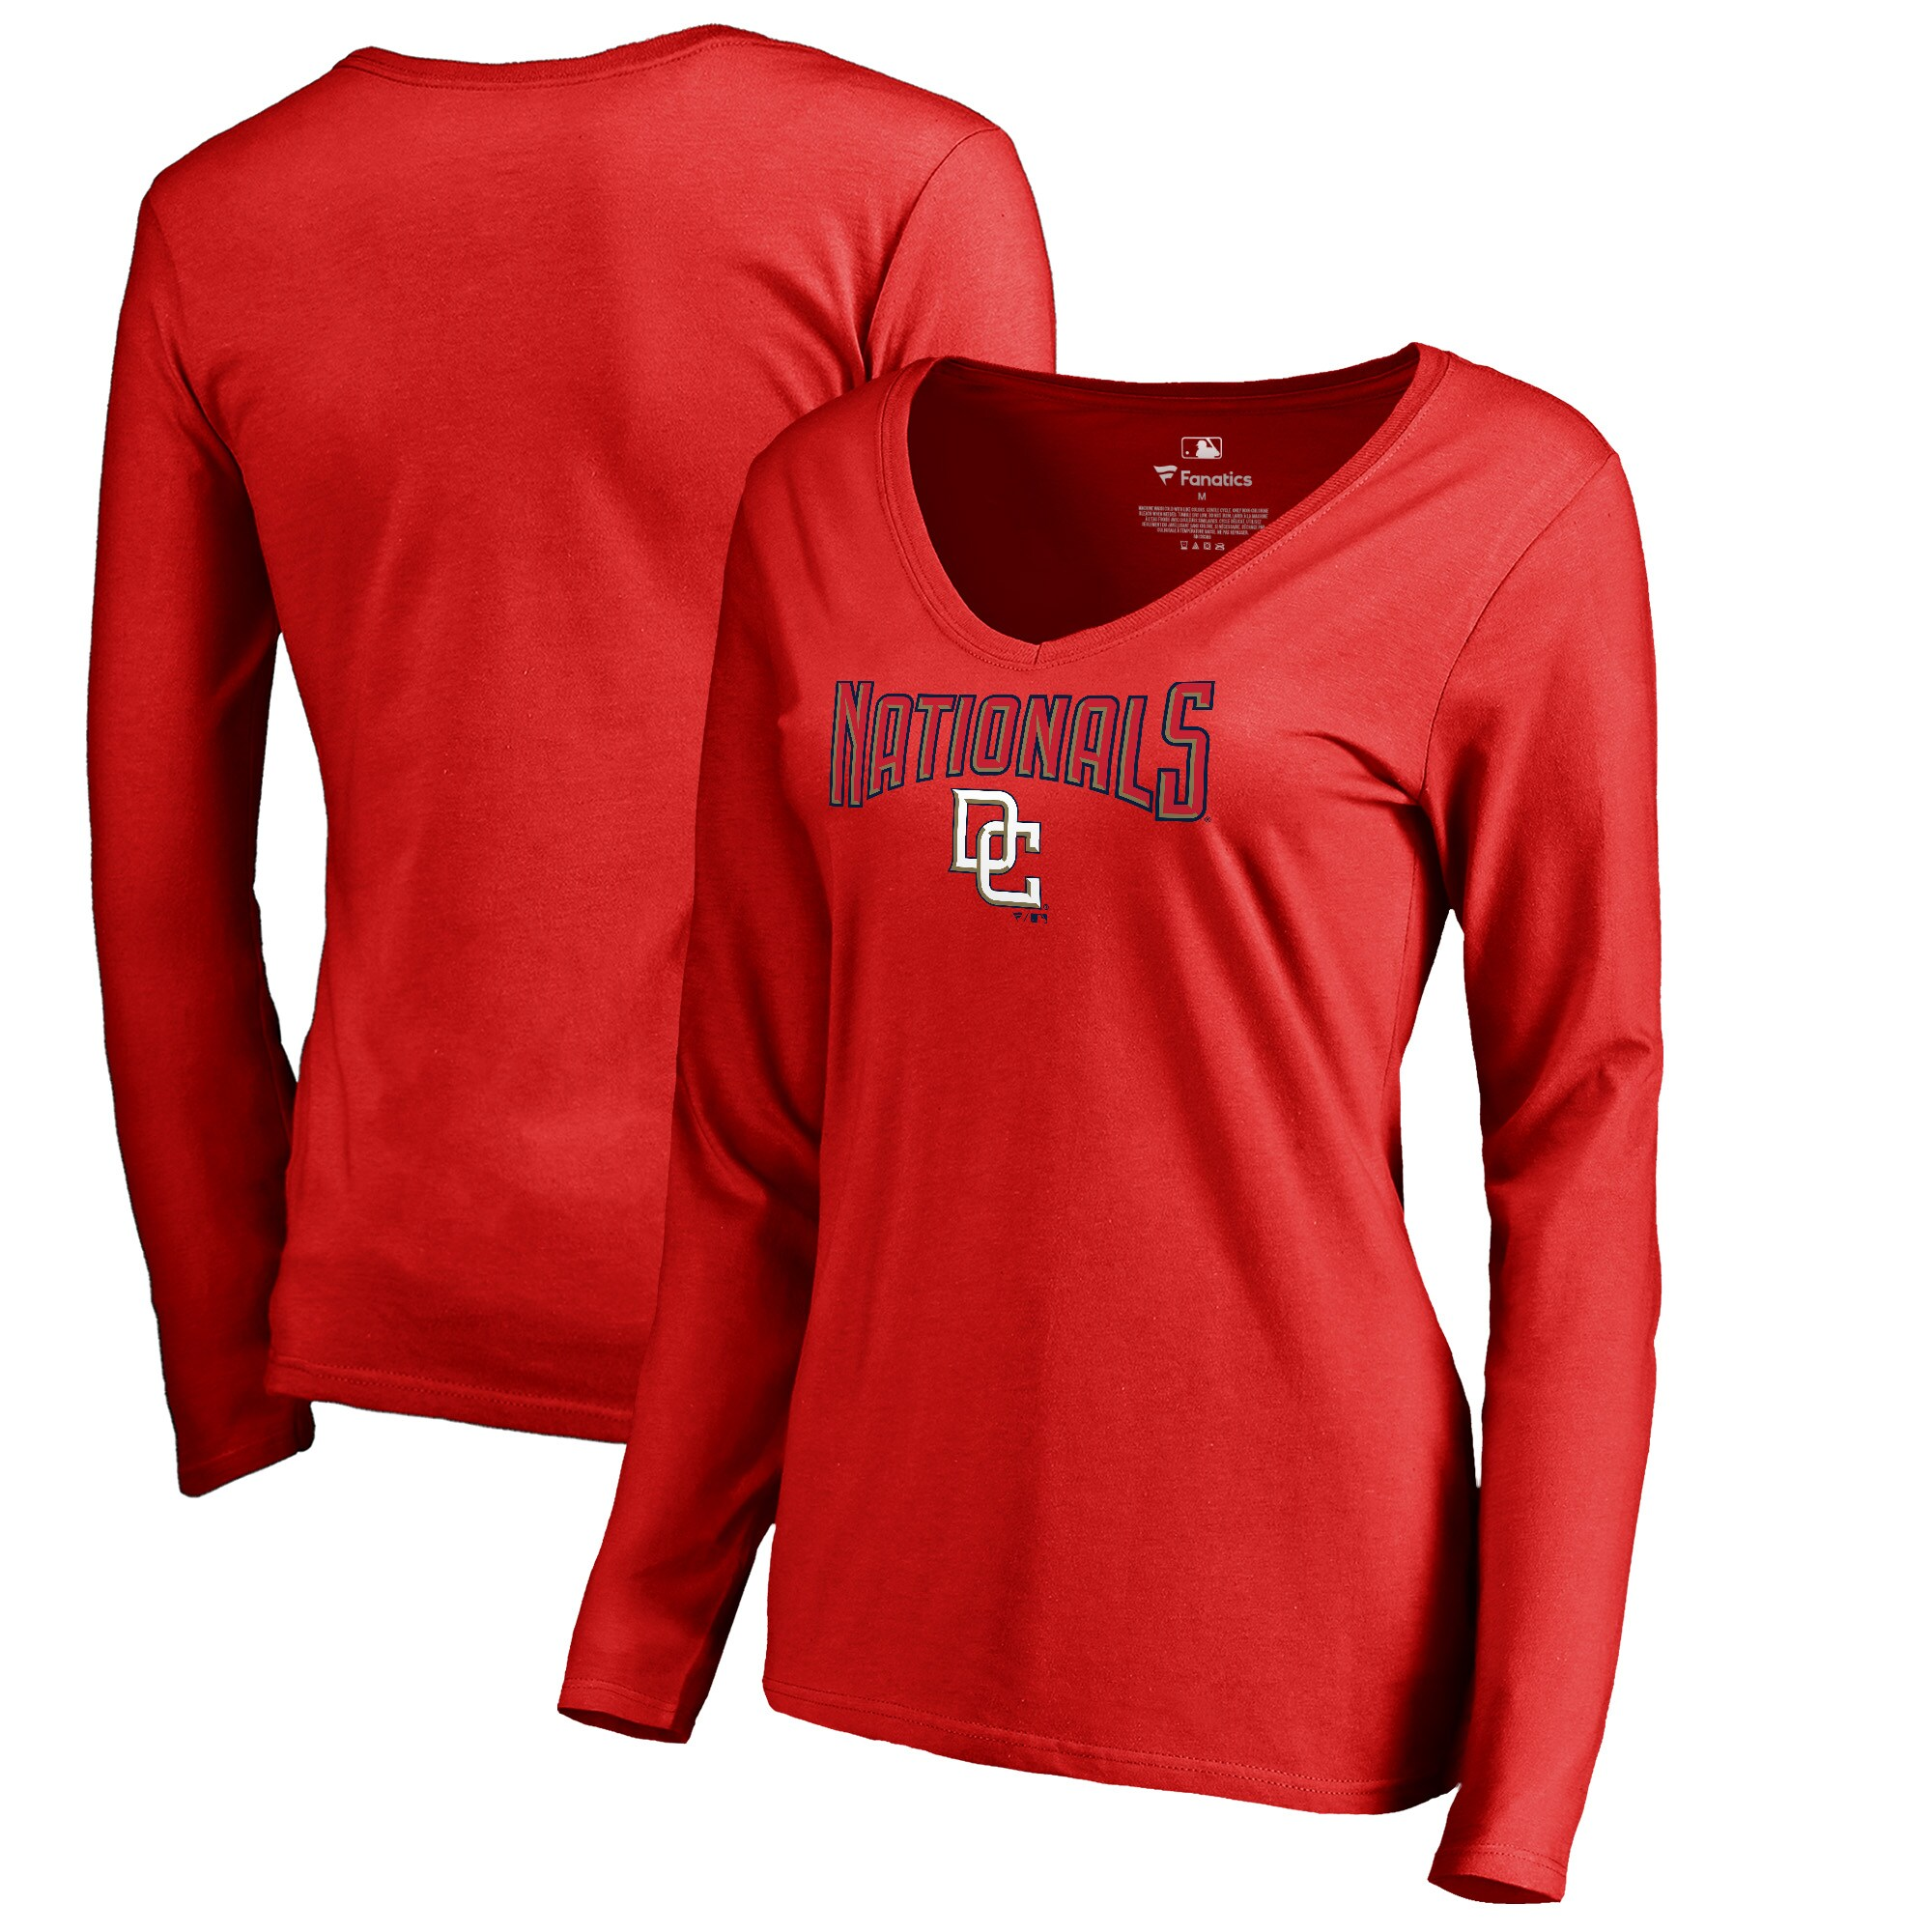 Washington Nationals Fanatics Branded Women's Cooperstown Collection Wahconah Long Sleeve V-Neck T-Shirt - Red